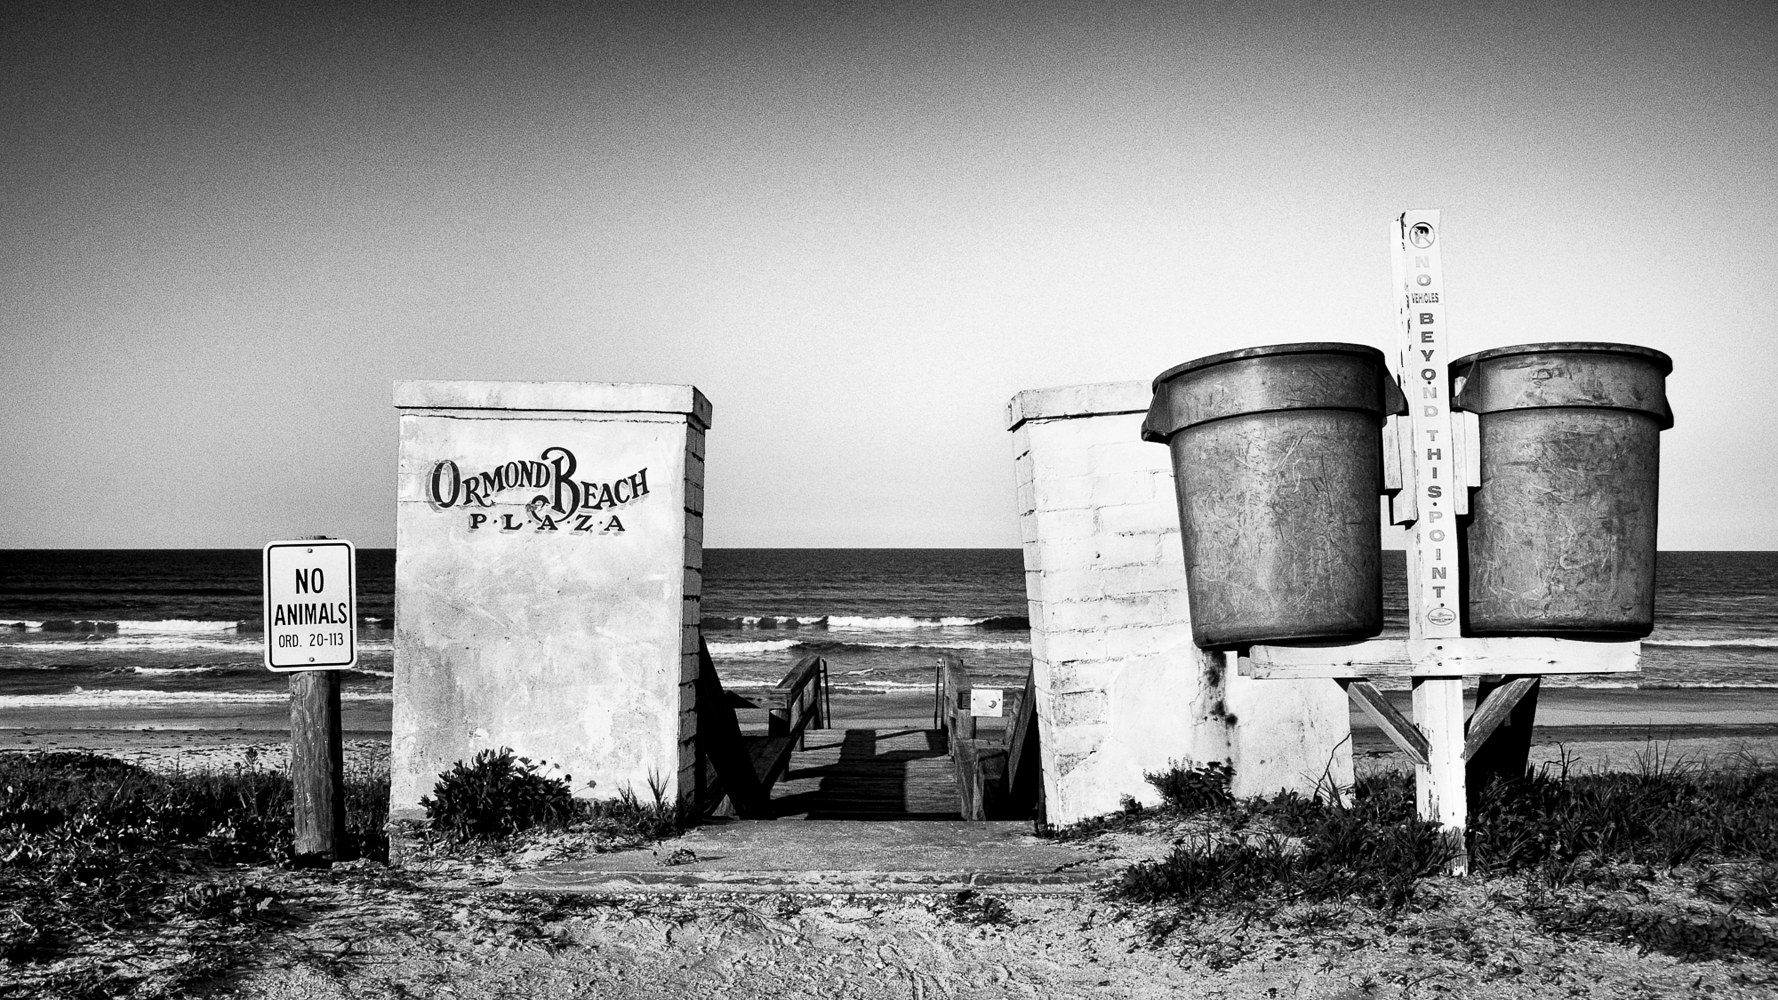 Ormond Beach Plaza (PL41_1200BW) by Gary Jones